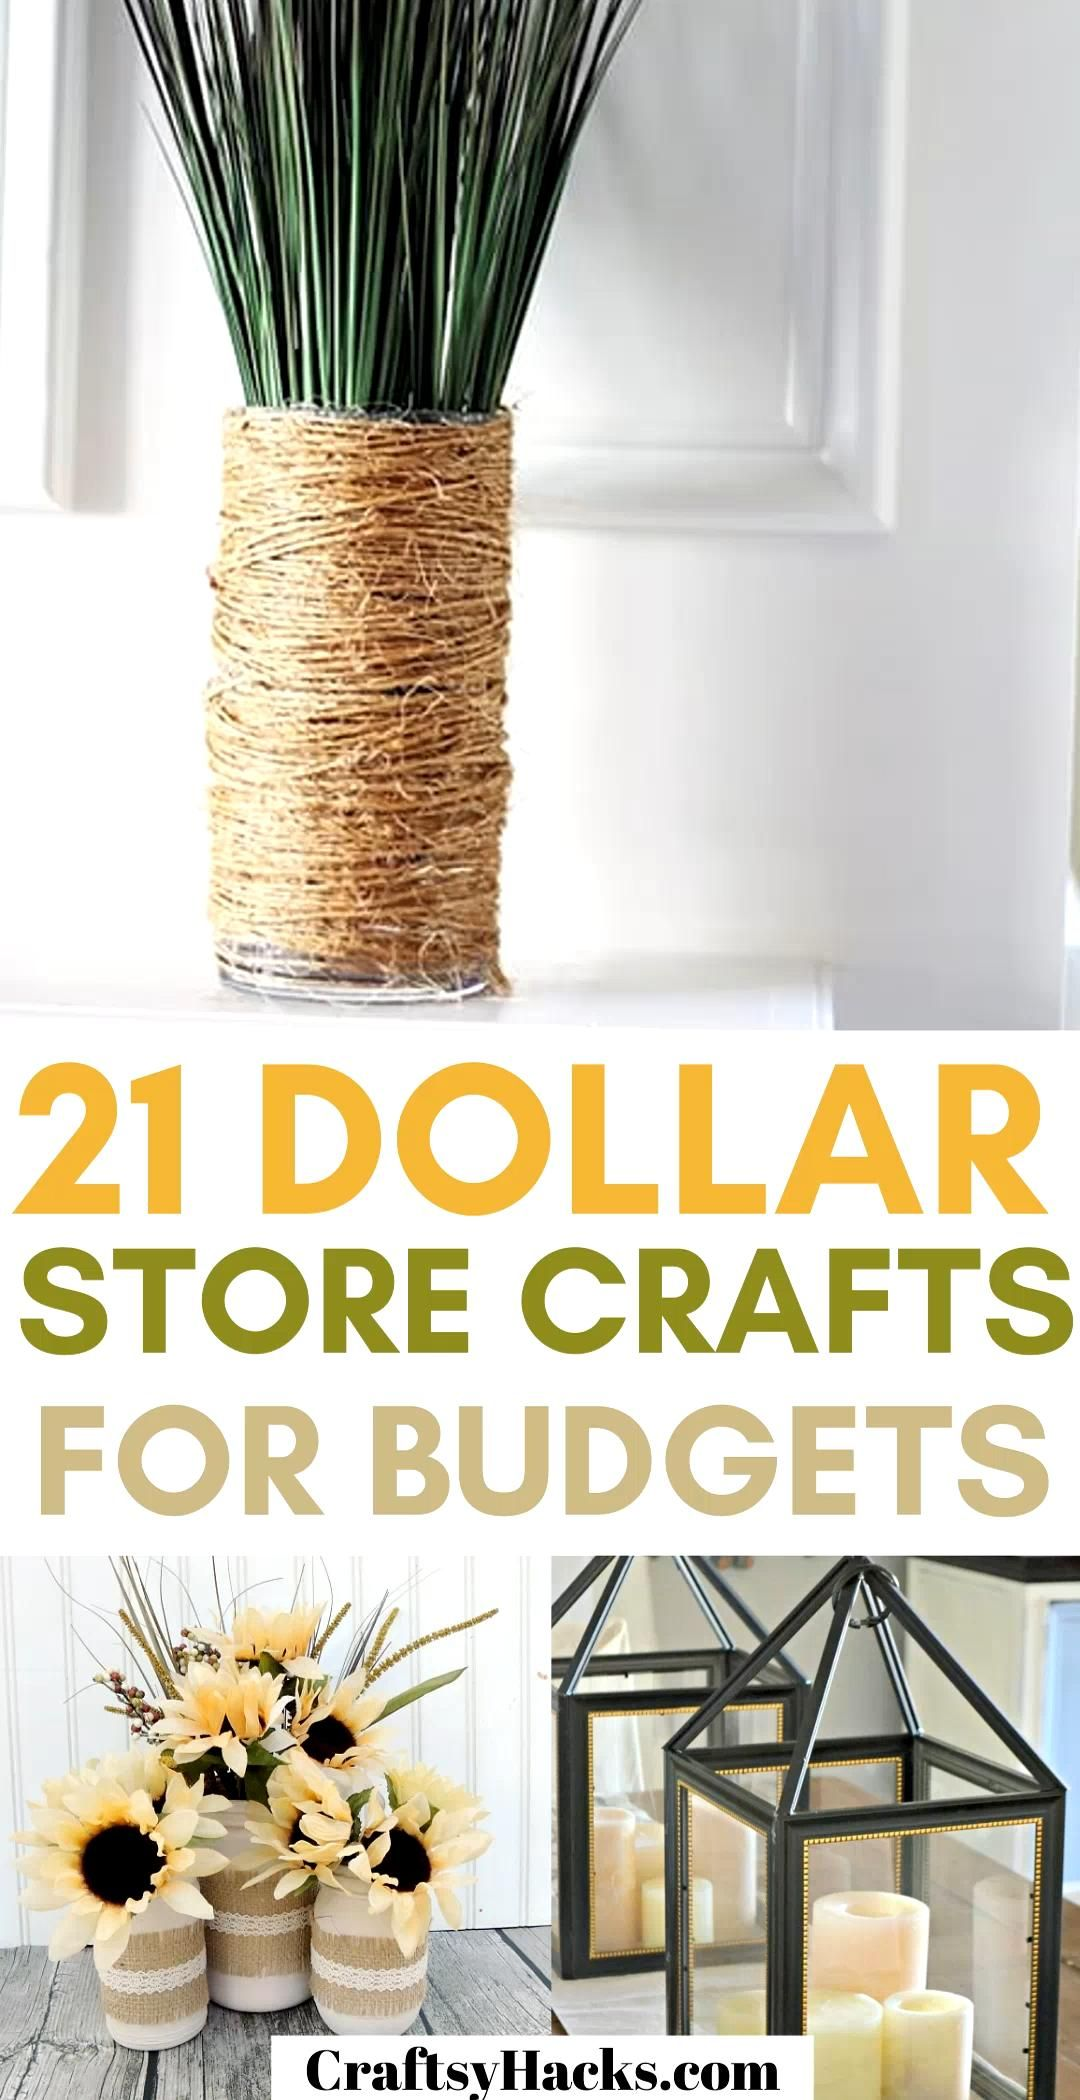 Photo of 21 Dollar Store Crafts for Budgets